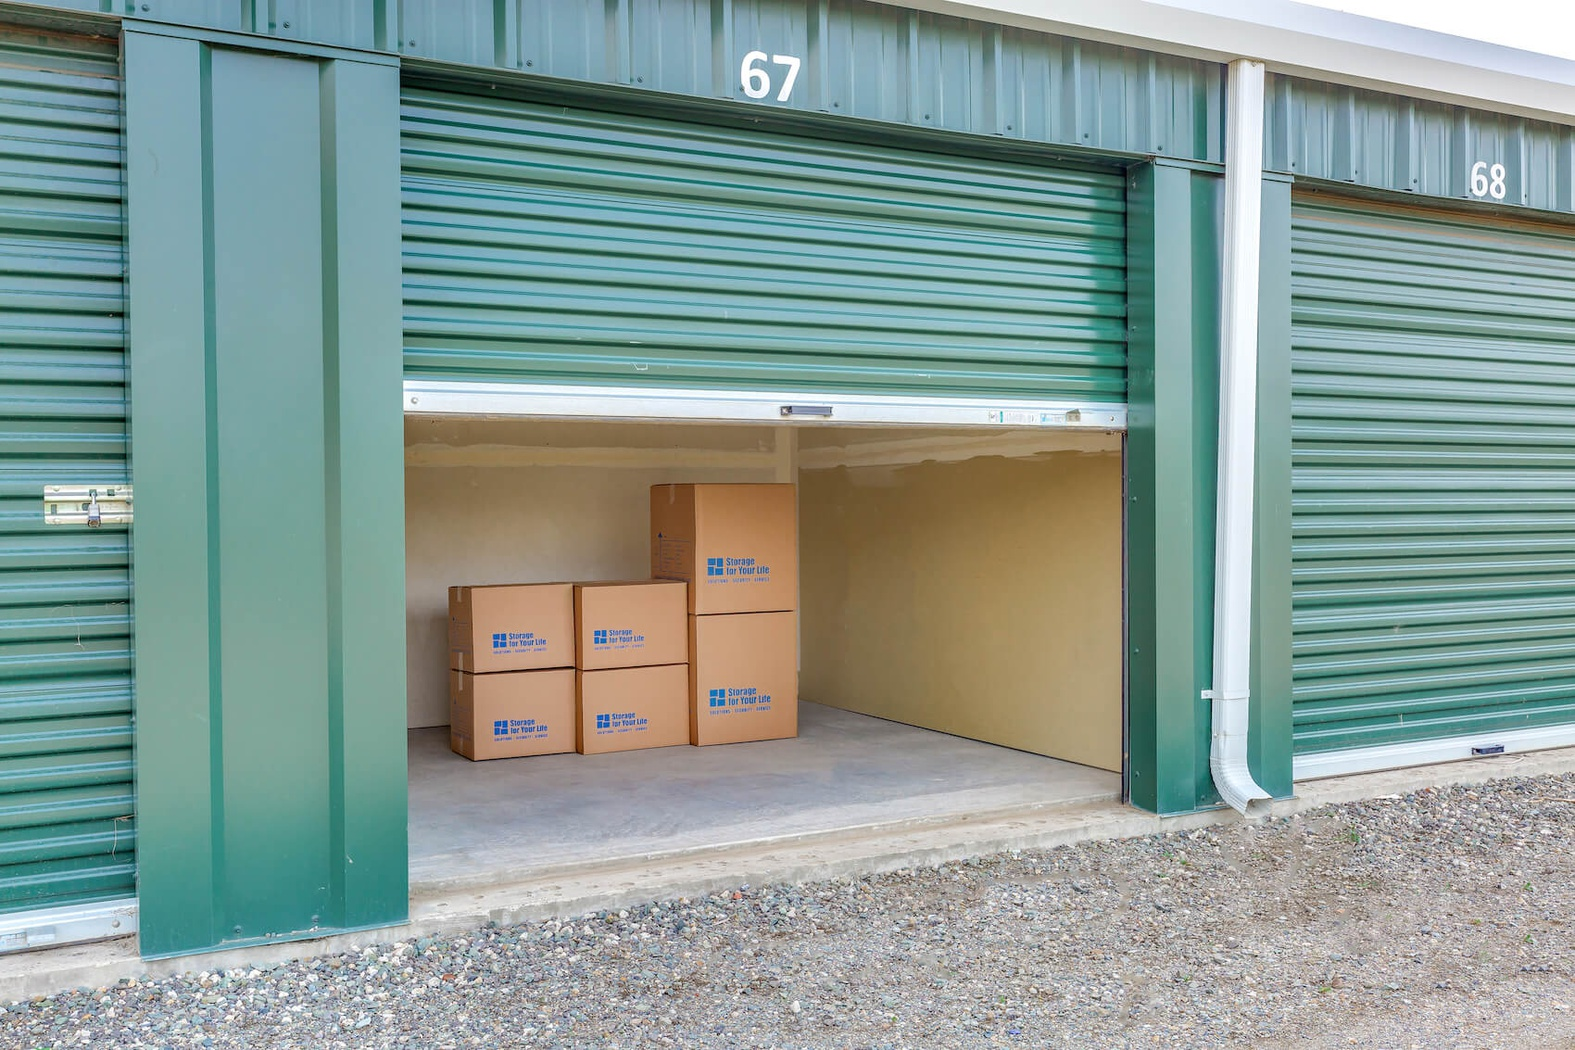 Rent Kamloops storage units at 1021 Ricardo Road. We offer a wide-range of affordable self storage units and your first 4 weeks are free!